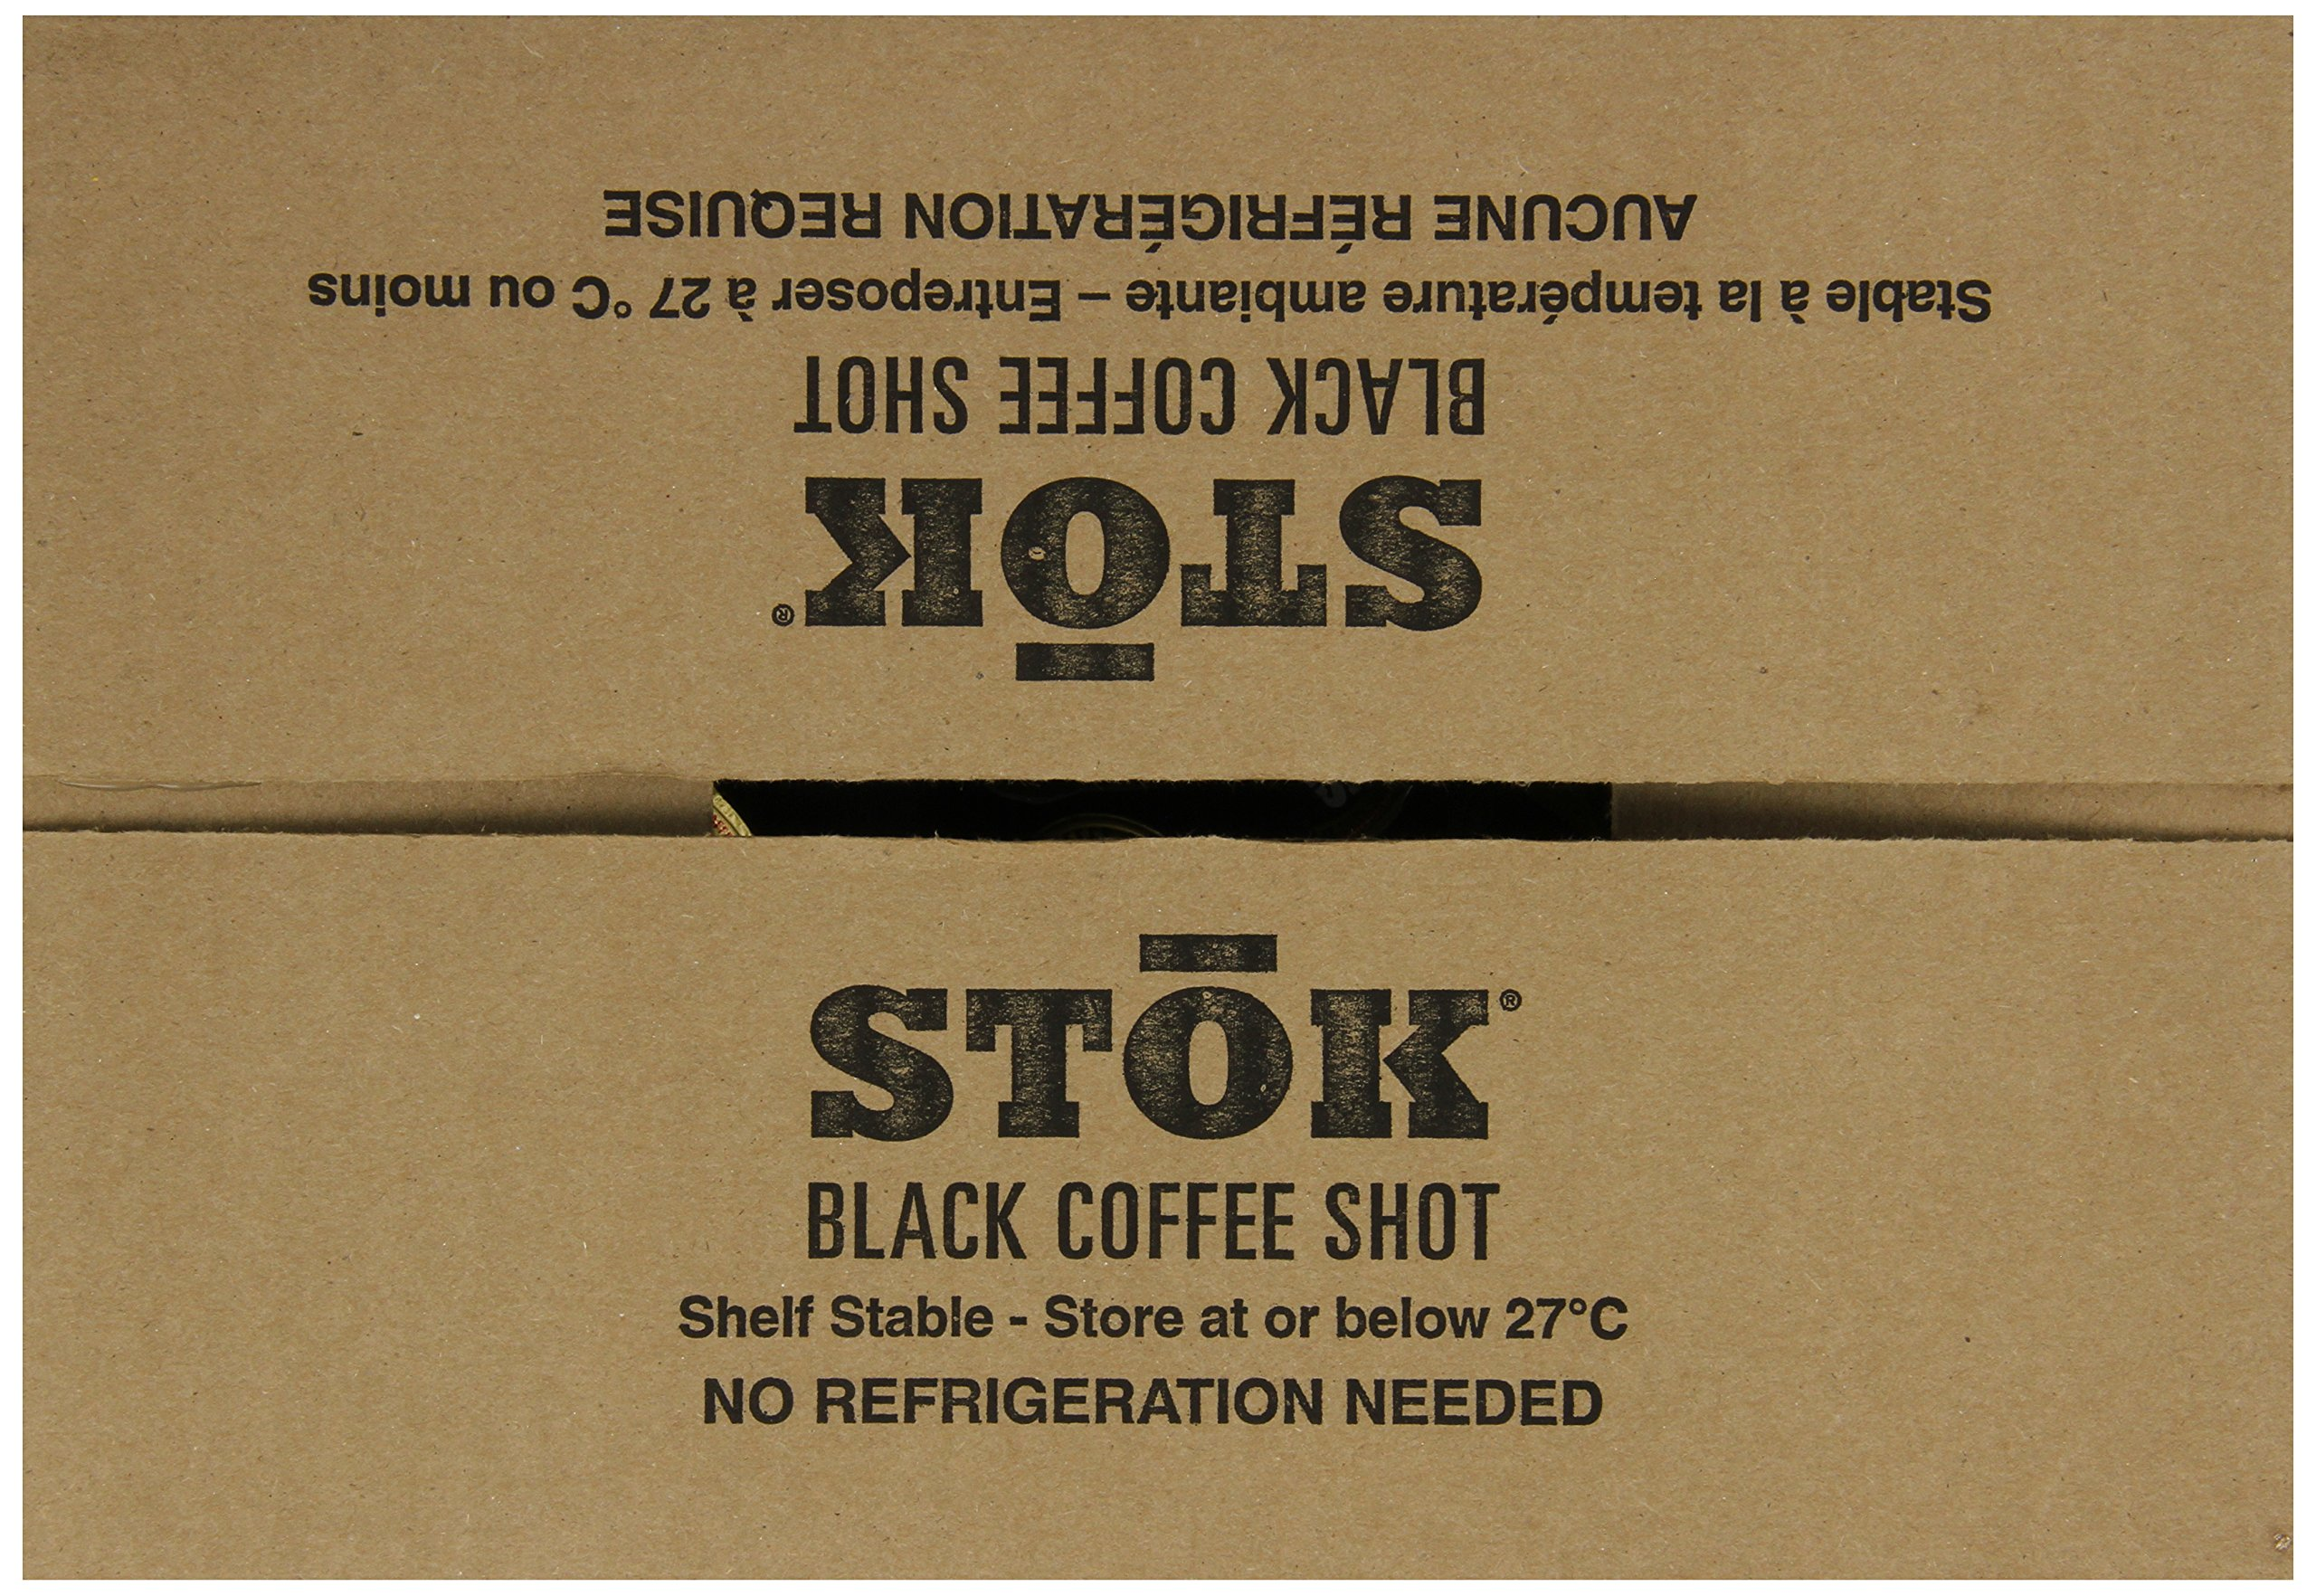 SToK Caffeinated Black Coffee Shots, 264 Single-Serving Shots, Single-Serve Shot of Unsweetened Coffee, Add to Coffee for Extra Caffeine, 40mg Caffeine (Packaging May vary) by SToK (Image #10)